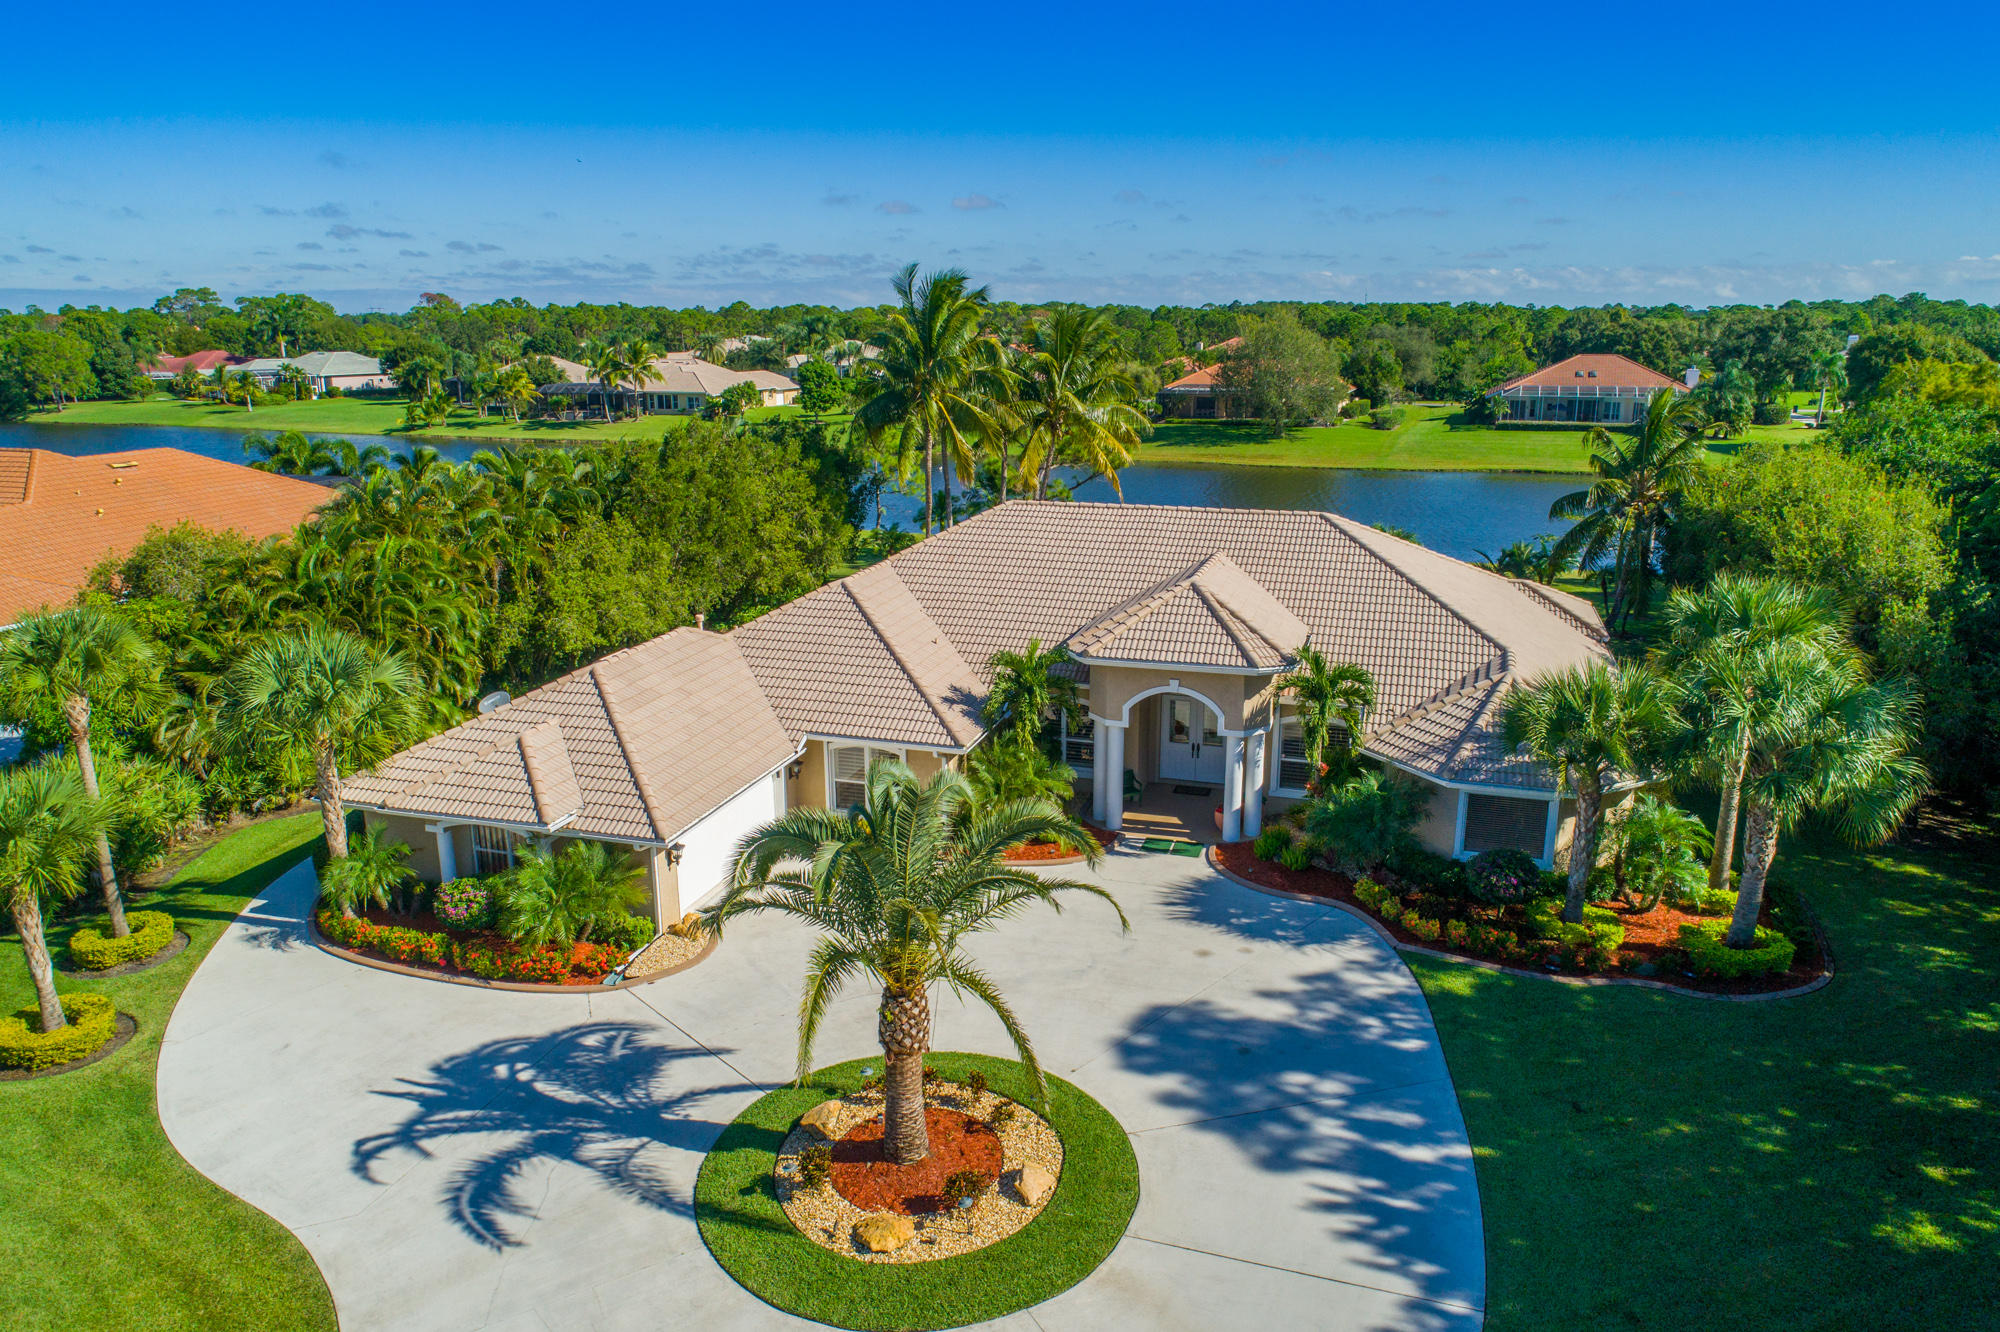 Absolutely Stunning Re-done beautiful home in Sabal Creek in PGA Village on 1.39 Acre Estate lot with lake view.  This CBS, Barrel tile roof, circular concrete driveway starts with new landscaping, exterior lighting & great curb appeal. Features 5 BR's, 4 Full BA's, 3 Car garage with 2 CG side load & other door left side of house perfect for the golf cart. Enter into magnificent new porcelain tile flooring, volume ceilings, design colors, custom window treatments,  gorgeous lighting, fireplace, decorative moldings & finishing details.  Gourmet Eat in Kitchen offers 42'' new white wood cabinet doors,  Carrera quartz counter tops, large island, new upgraded hood, tile back splash, butlers pantry, pantry in kitchen & walk in pantry down hallway.  Over $100,000 in improvements!  SEE REMARKS! Gorgeous Master Suite offer wonderful lake view, vinyl flooring, plantation shutters & large walk in closets with built in's. Exceptional updated Master Bath looks like a model! Separate shower, tub, dual sinks & quartz upgrade throughout. Fabulous outside area features phantom screen enclosure, paver extended patio, trellis & pool/spa fenced in with tranquil lake & tropical garden setting. This home is like paradise with all of the up to date decorating & design finishes.